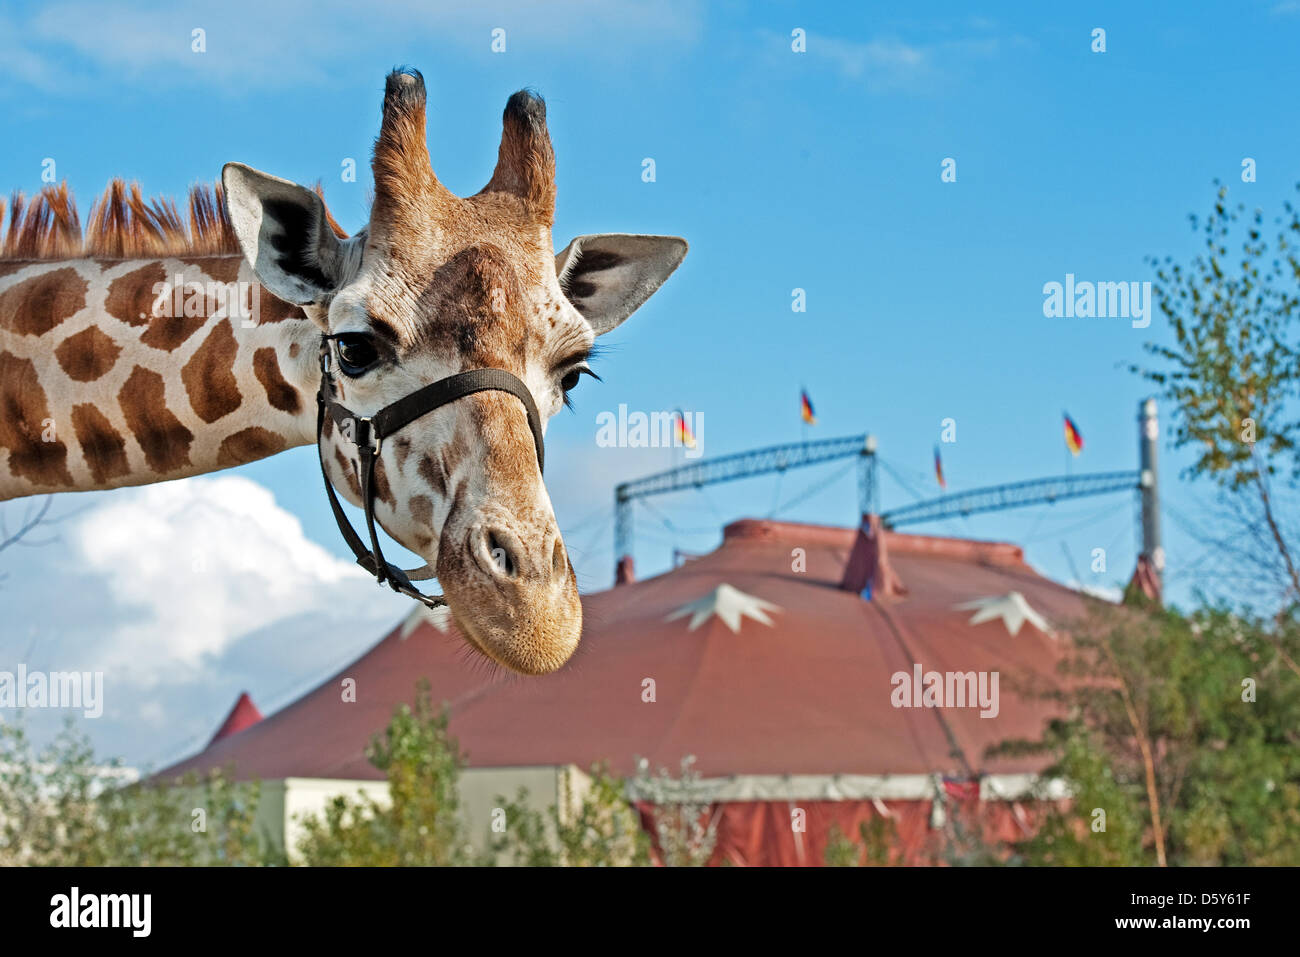 A giraffe of the Berolina Circus stands in front of the circus tent in Berlin Germany 11 October 2012. Photo Robert Schlesinger & A giraffe of the Berolina Circus stands in front of the circus ...